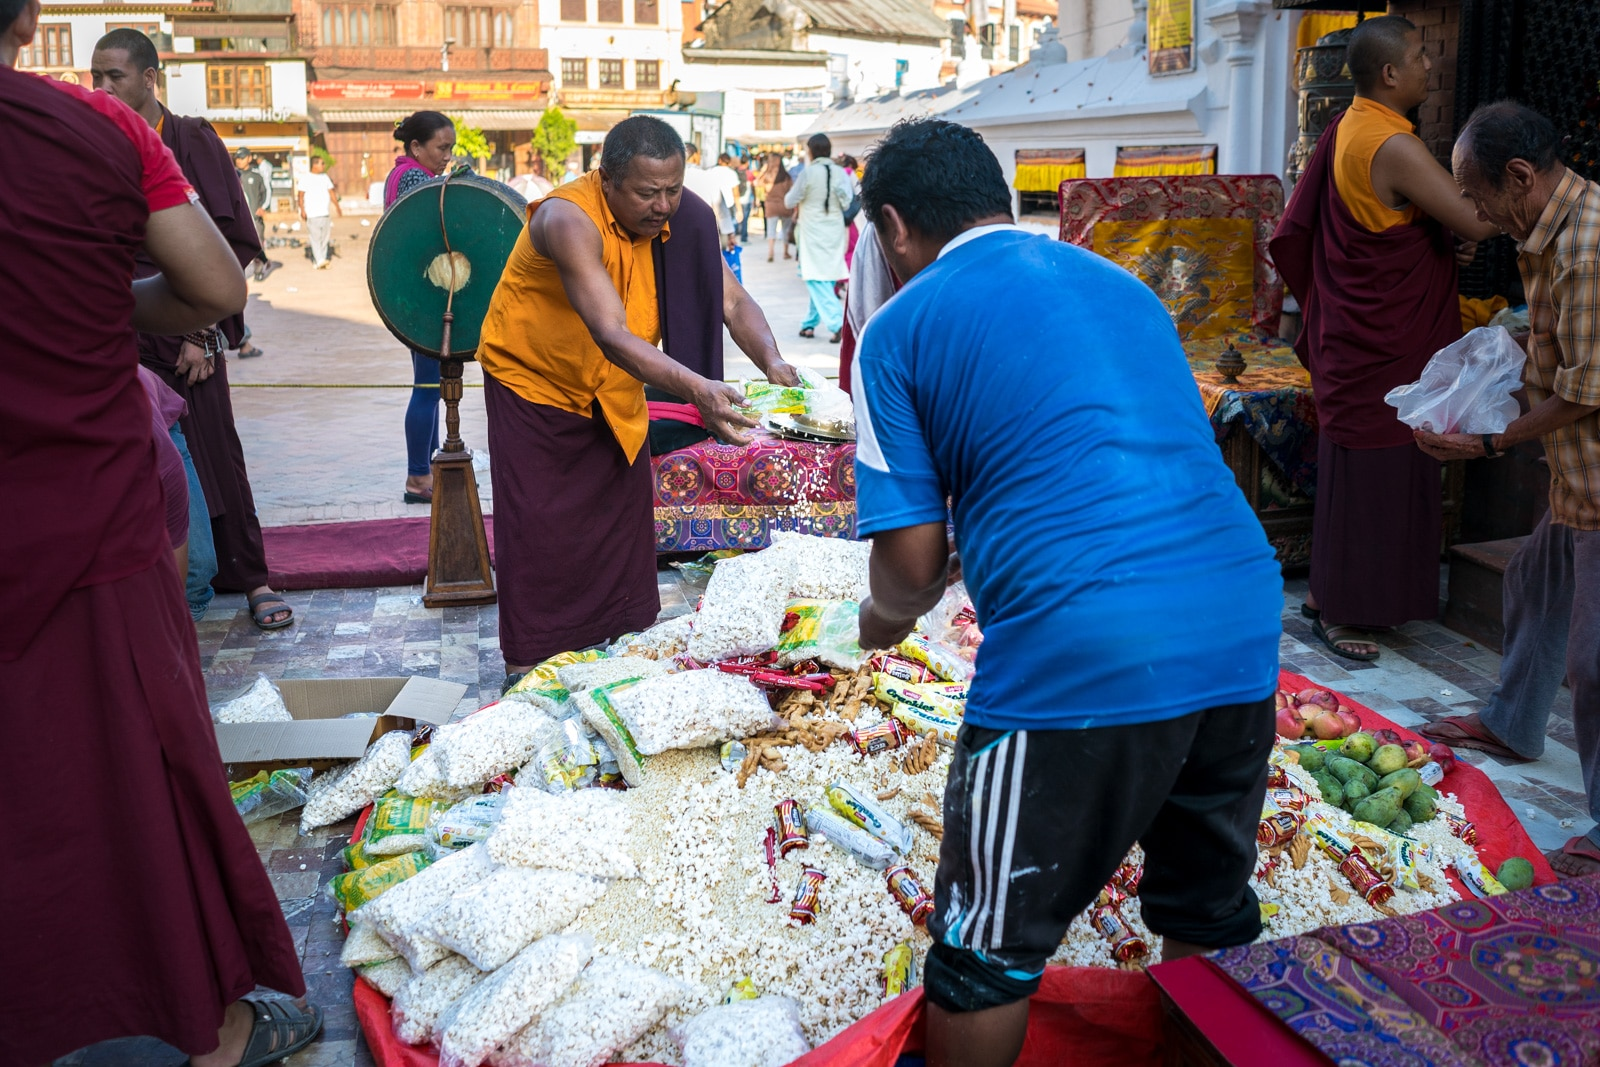 Traveling during monsoon in Nepal - Food donations at Boudhanath temple in Kathmandu - Lost With Purpose travel blog